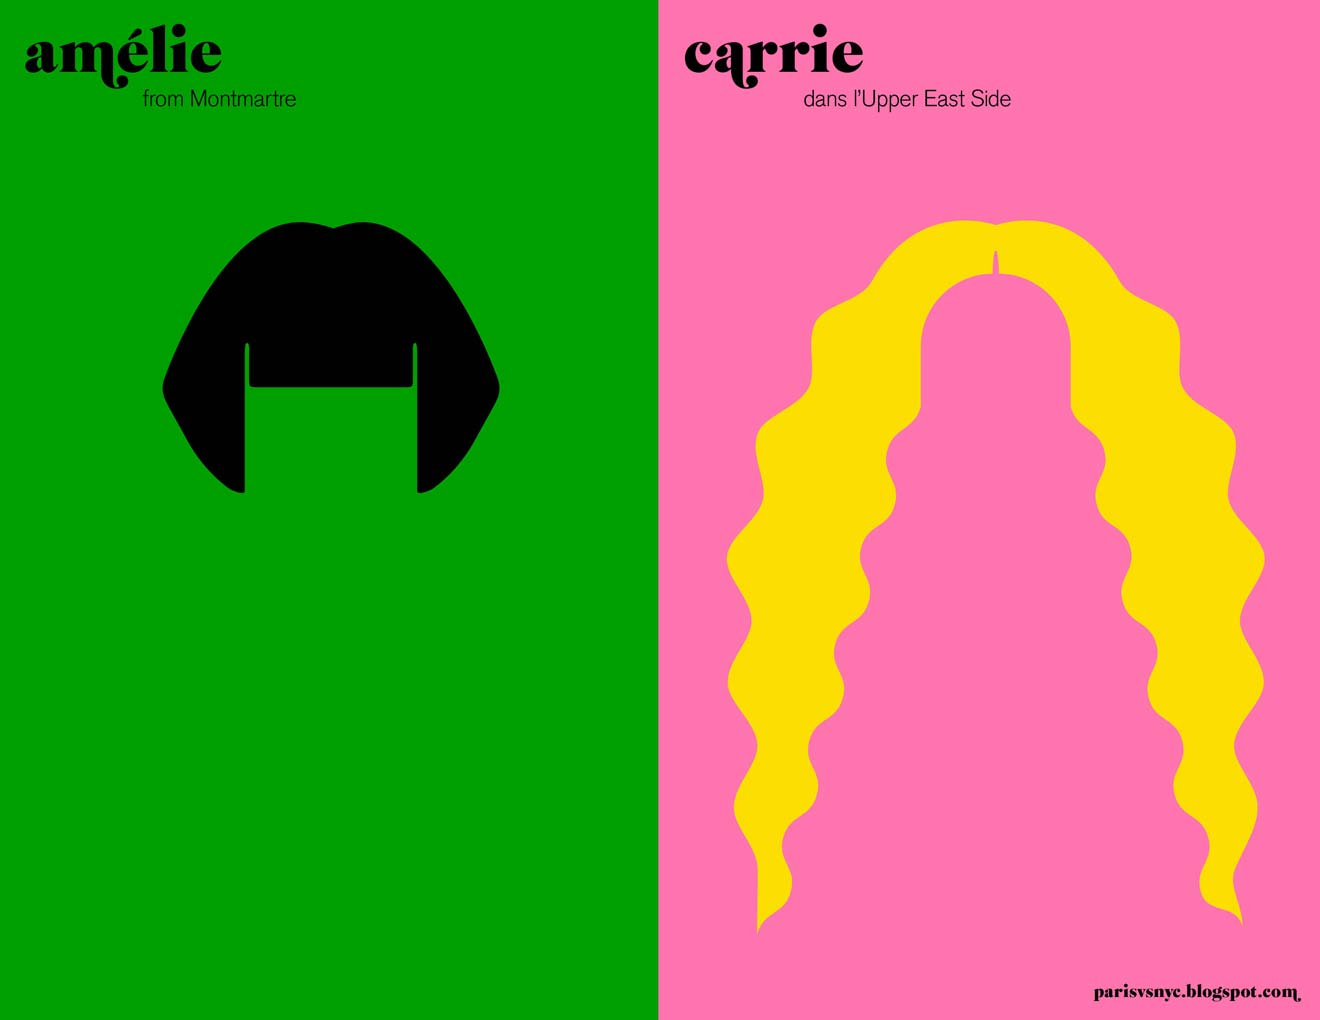 amelie carrie paris vs new york